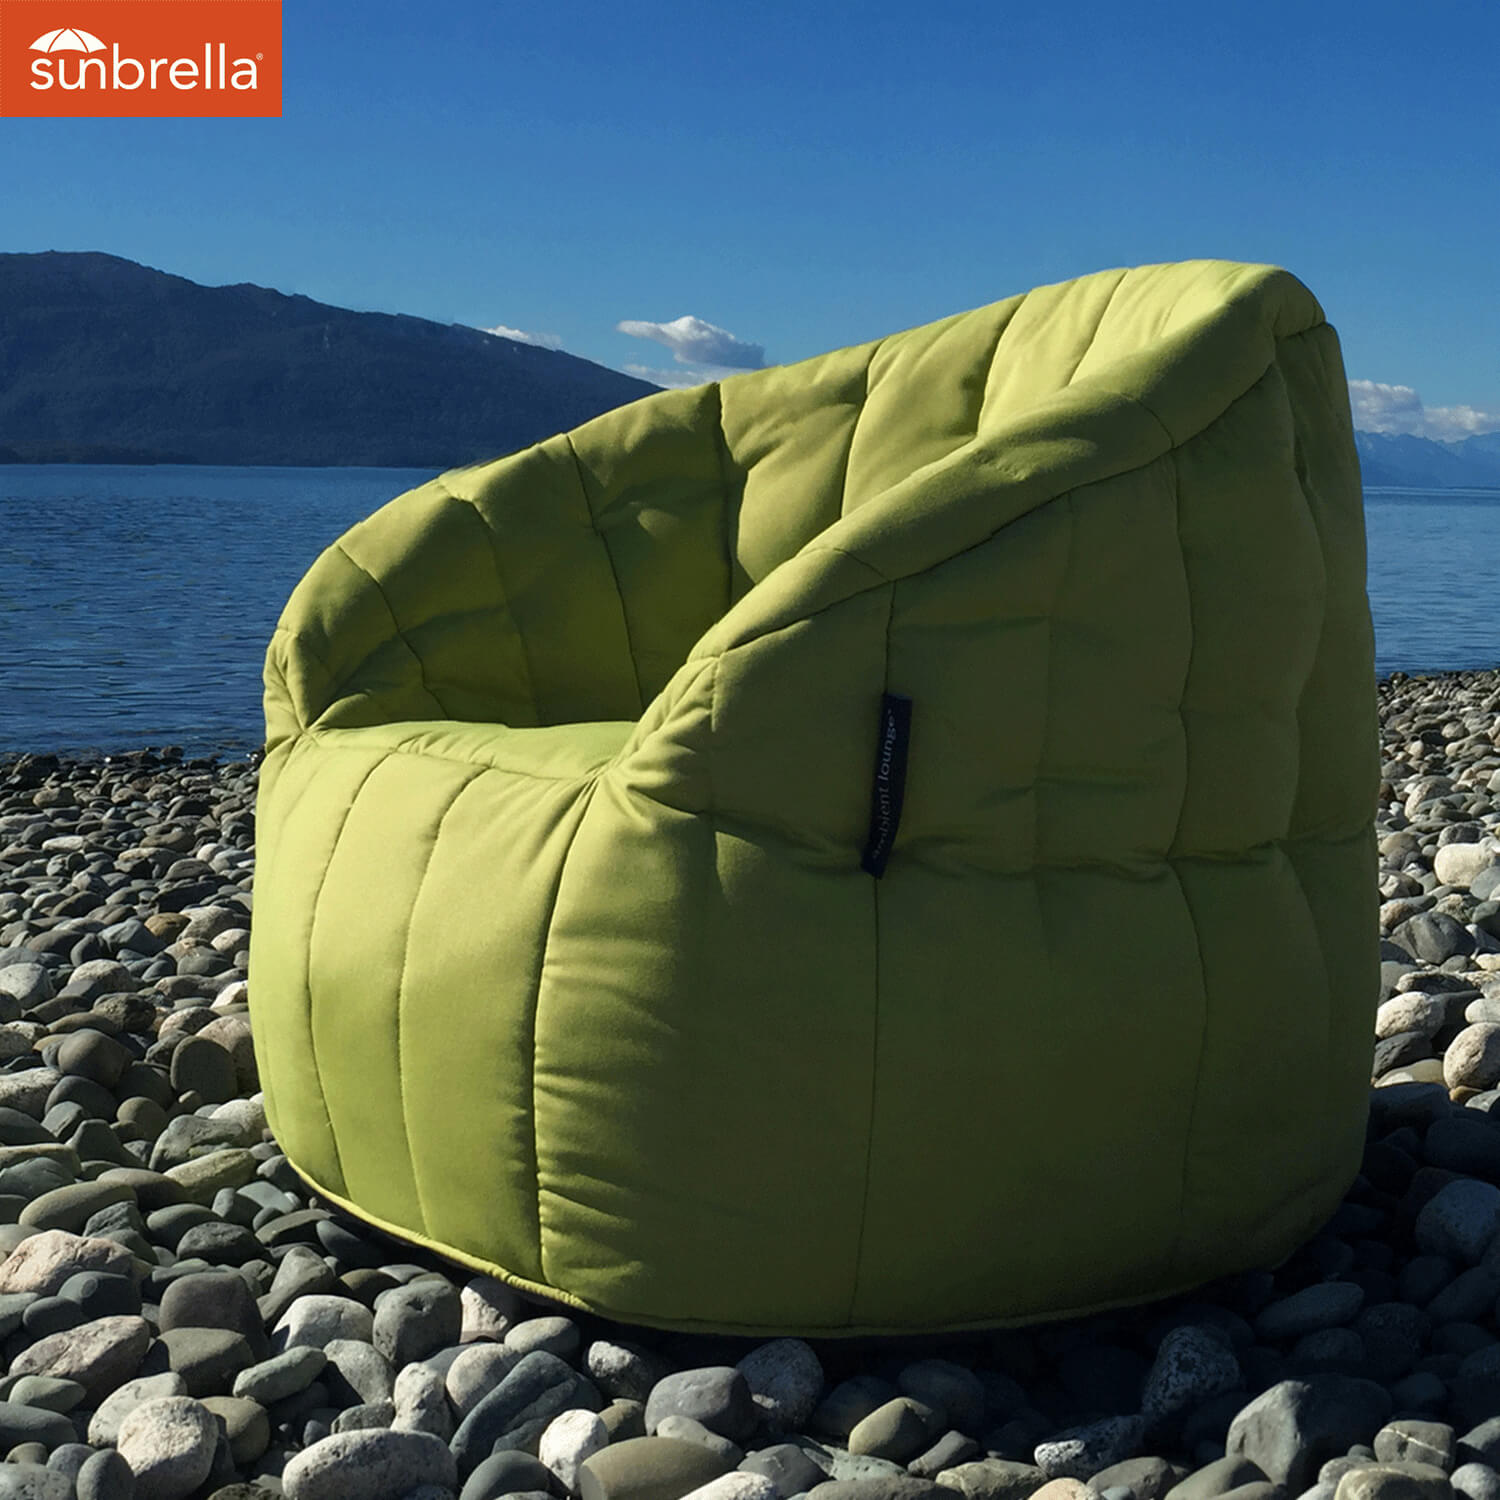 Outdoor Bean Bags Butterfly Sofa Limespa Sunbrella